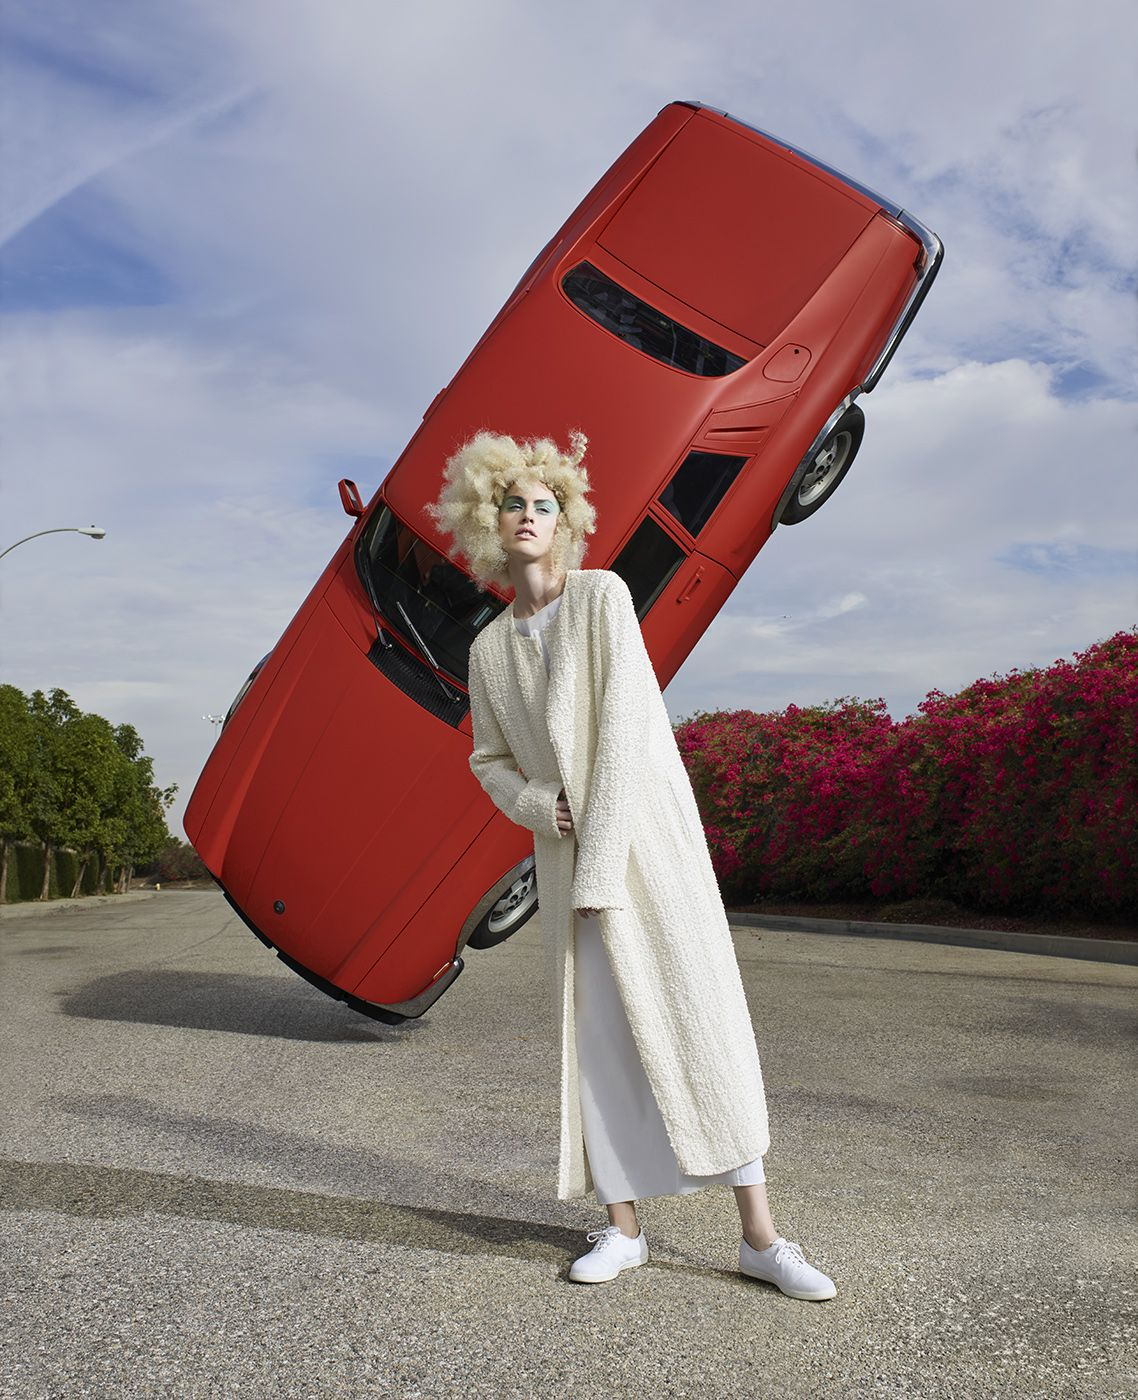 Fashion (with Red Car on Point), Los Angeles, 2016, 40 x 32 1/2 Inches, Archival Pigment Print, Edition of 5